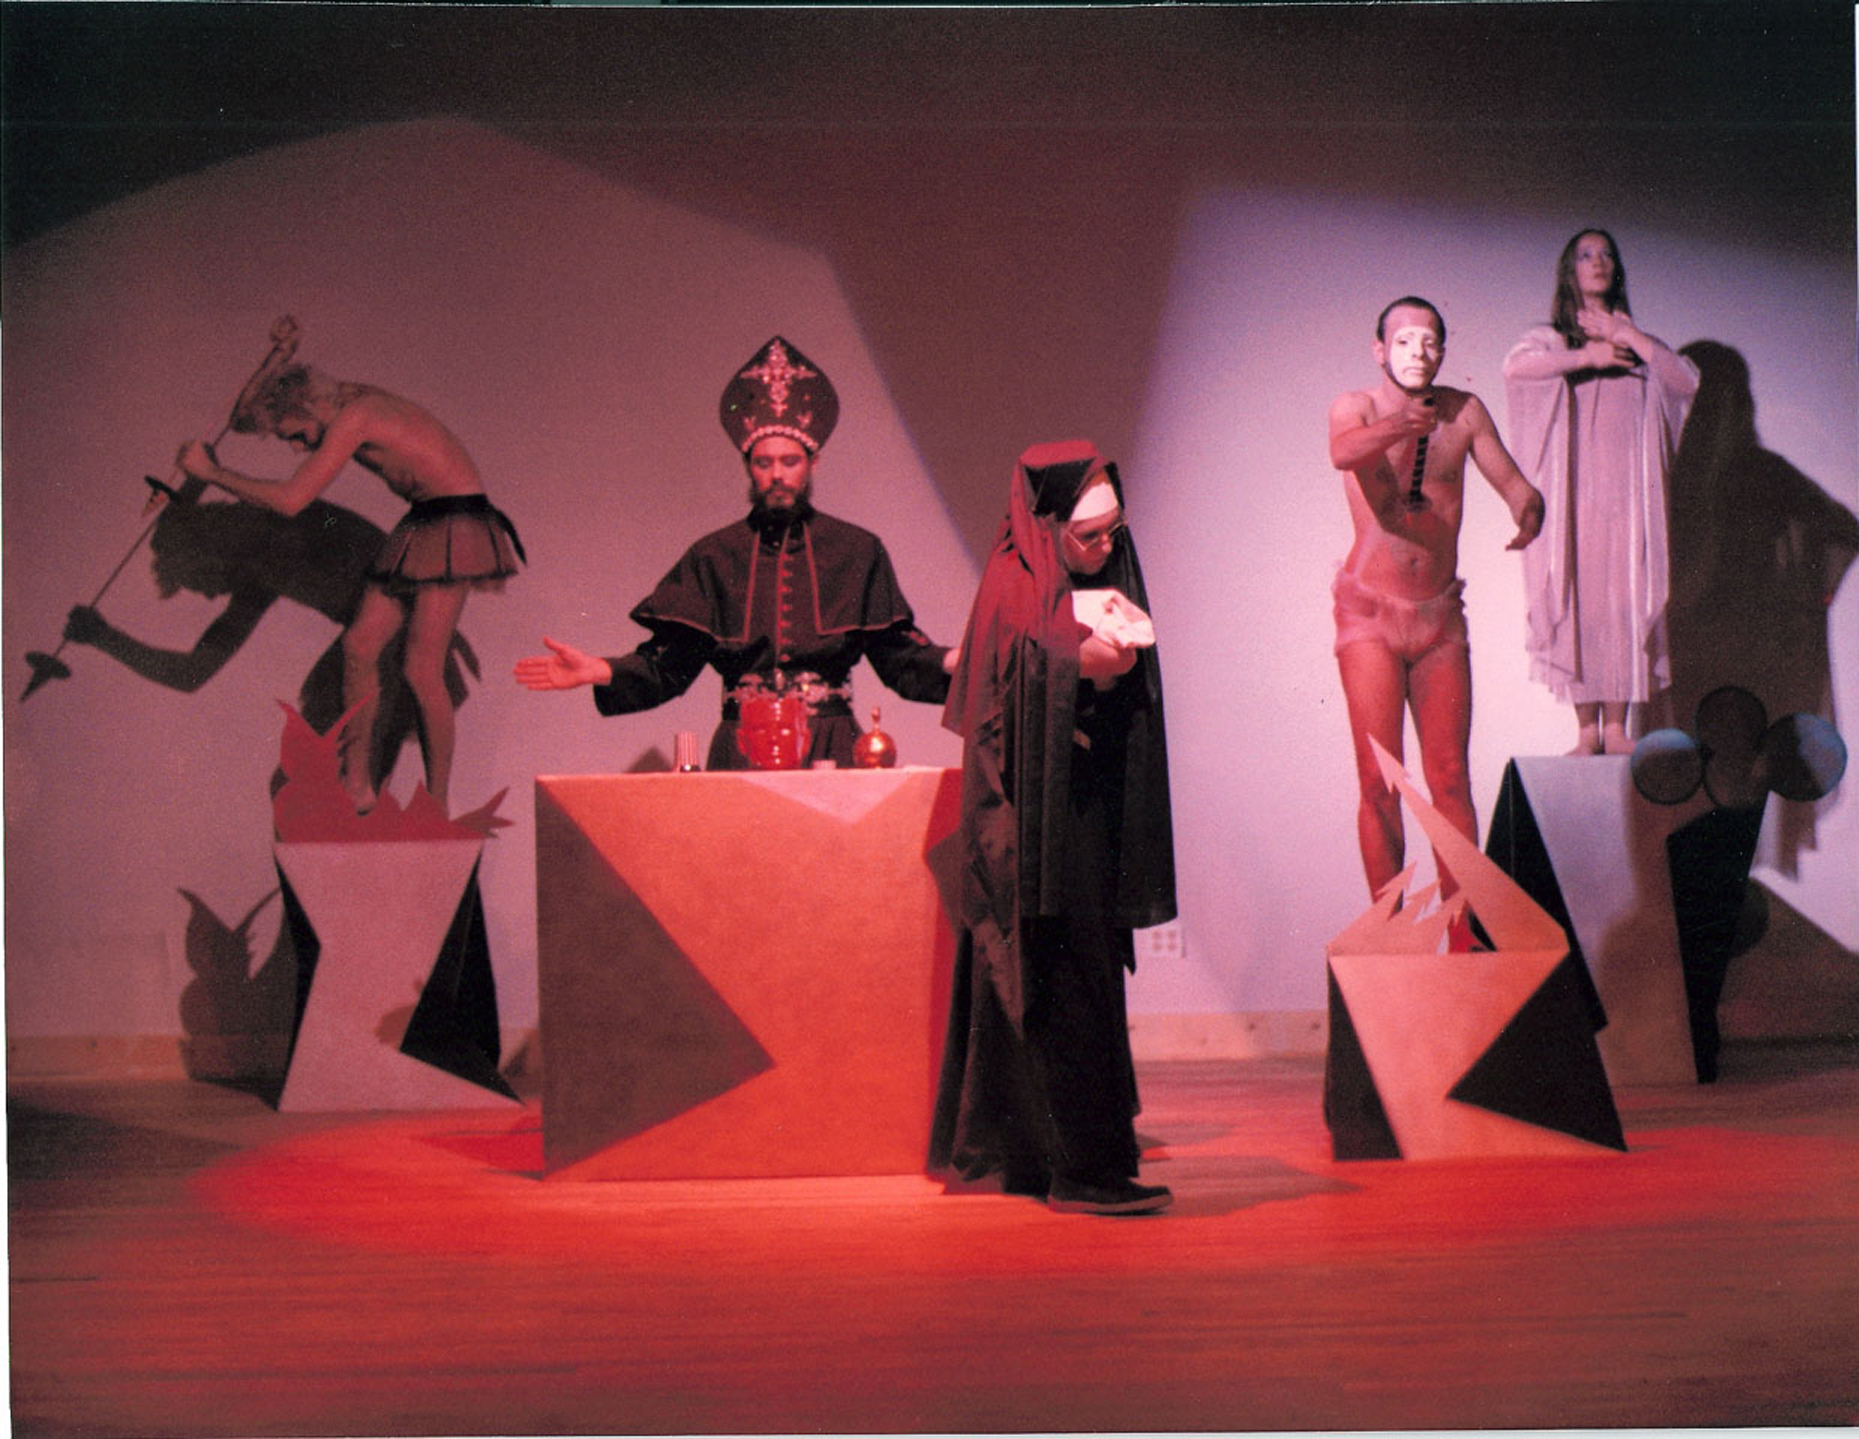 Rikki Ercoli Hap Phillips, David Thomas, Brendan Fawcett, and Debi Glennon in The Mass from Biello's How I Spent My Summer Vacation, Painted Bride, Philadelphia, 1983